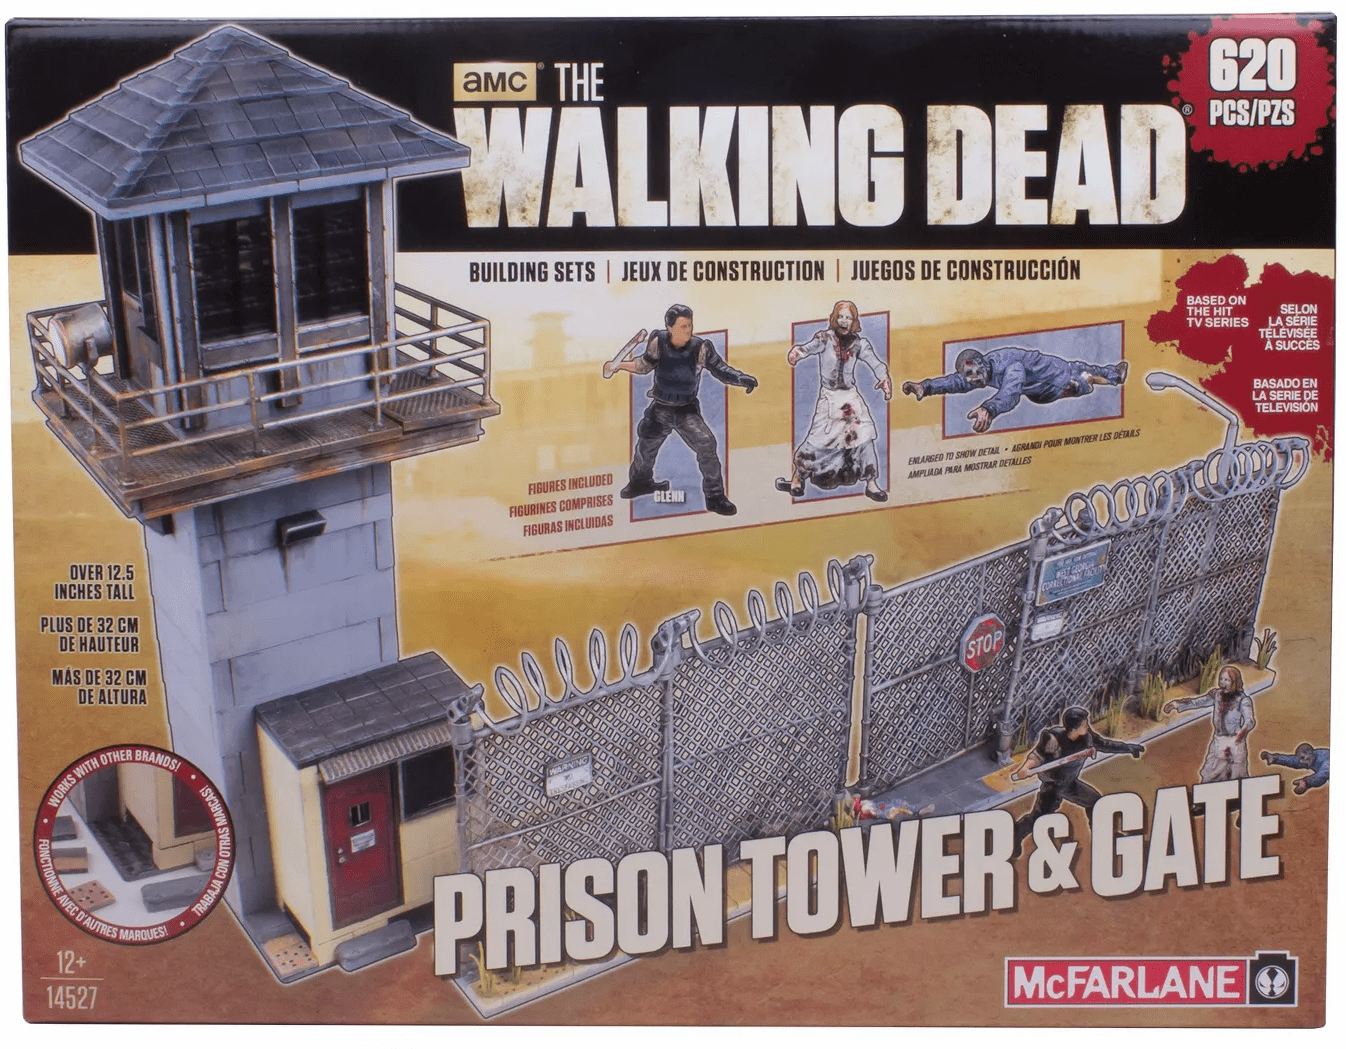 McFarlane The Walking Dead Prison Tower and Gate Construction Set